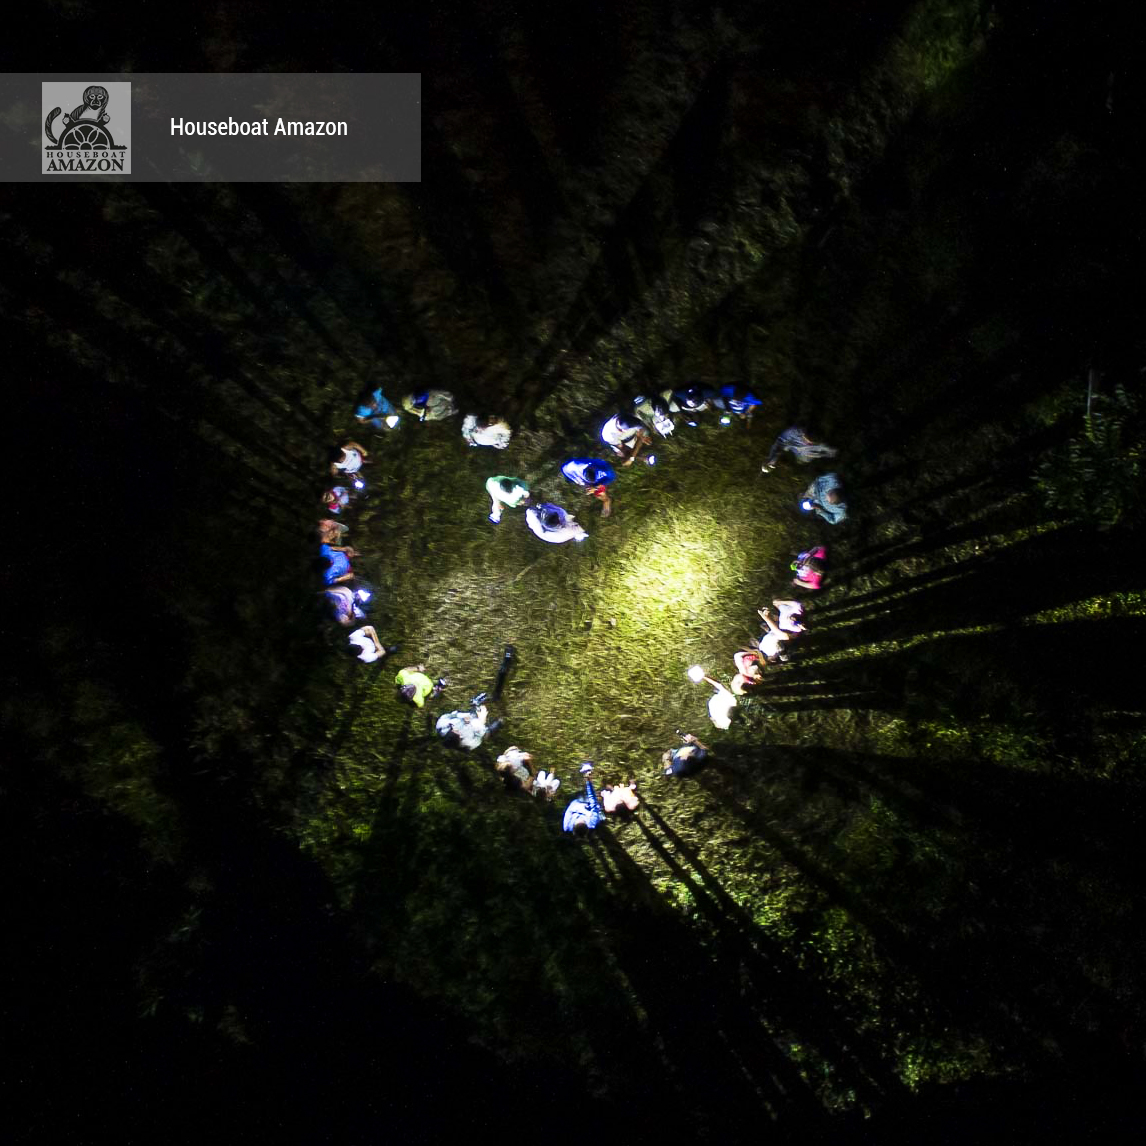 The Flores community members get into the spirit of Valentines Day and help us make a special night surprise. – this is the heart at night photos